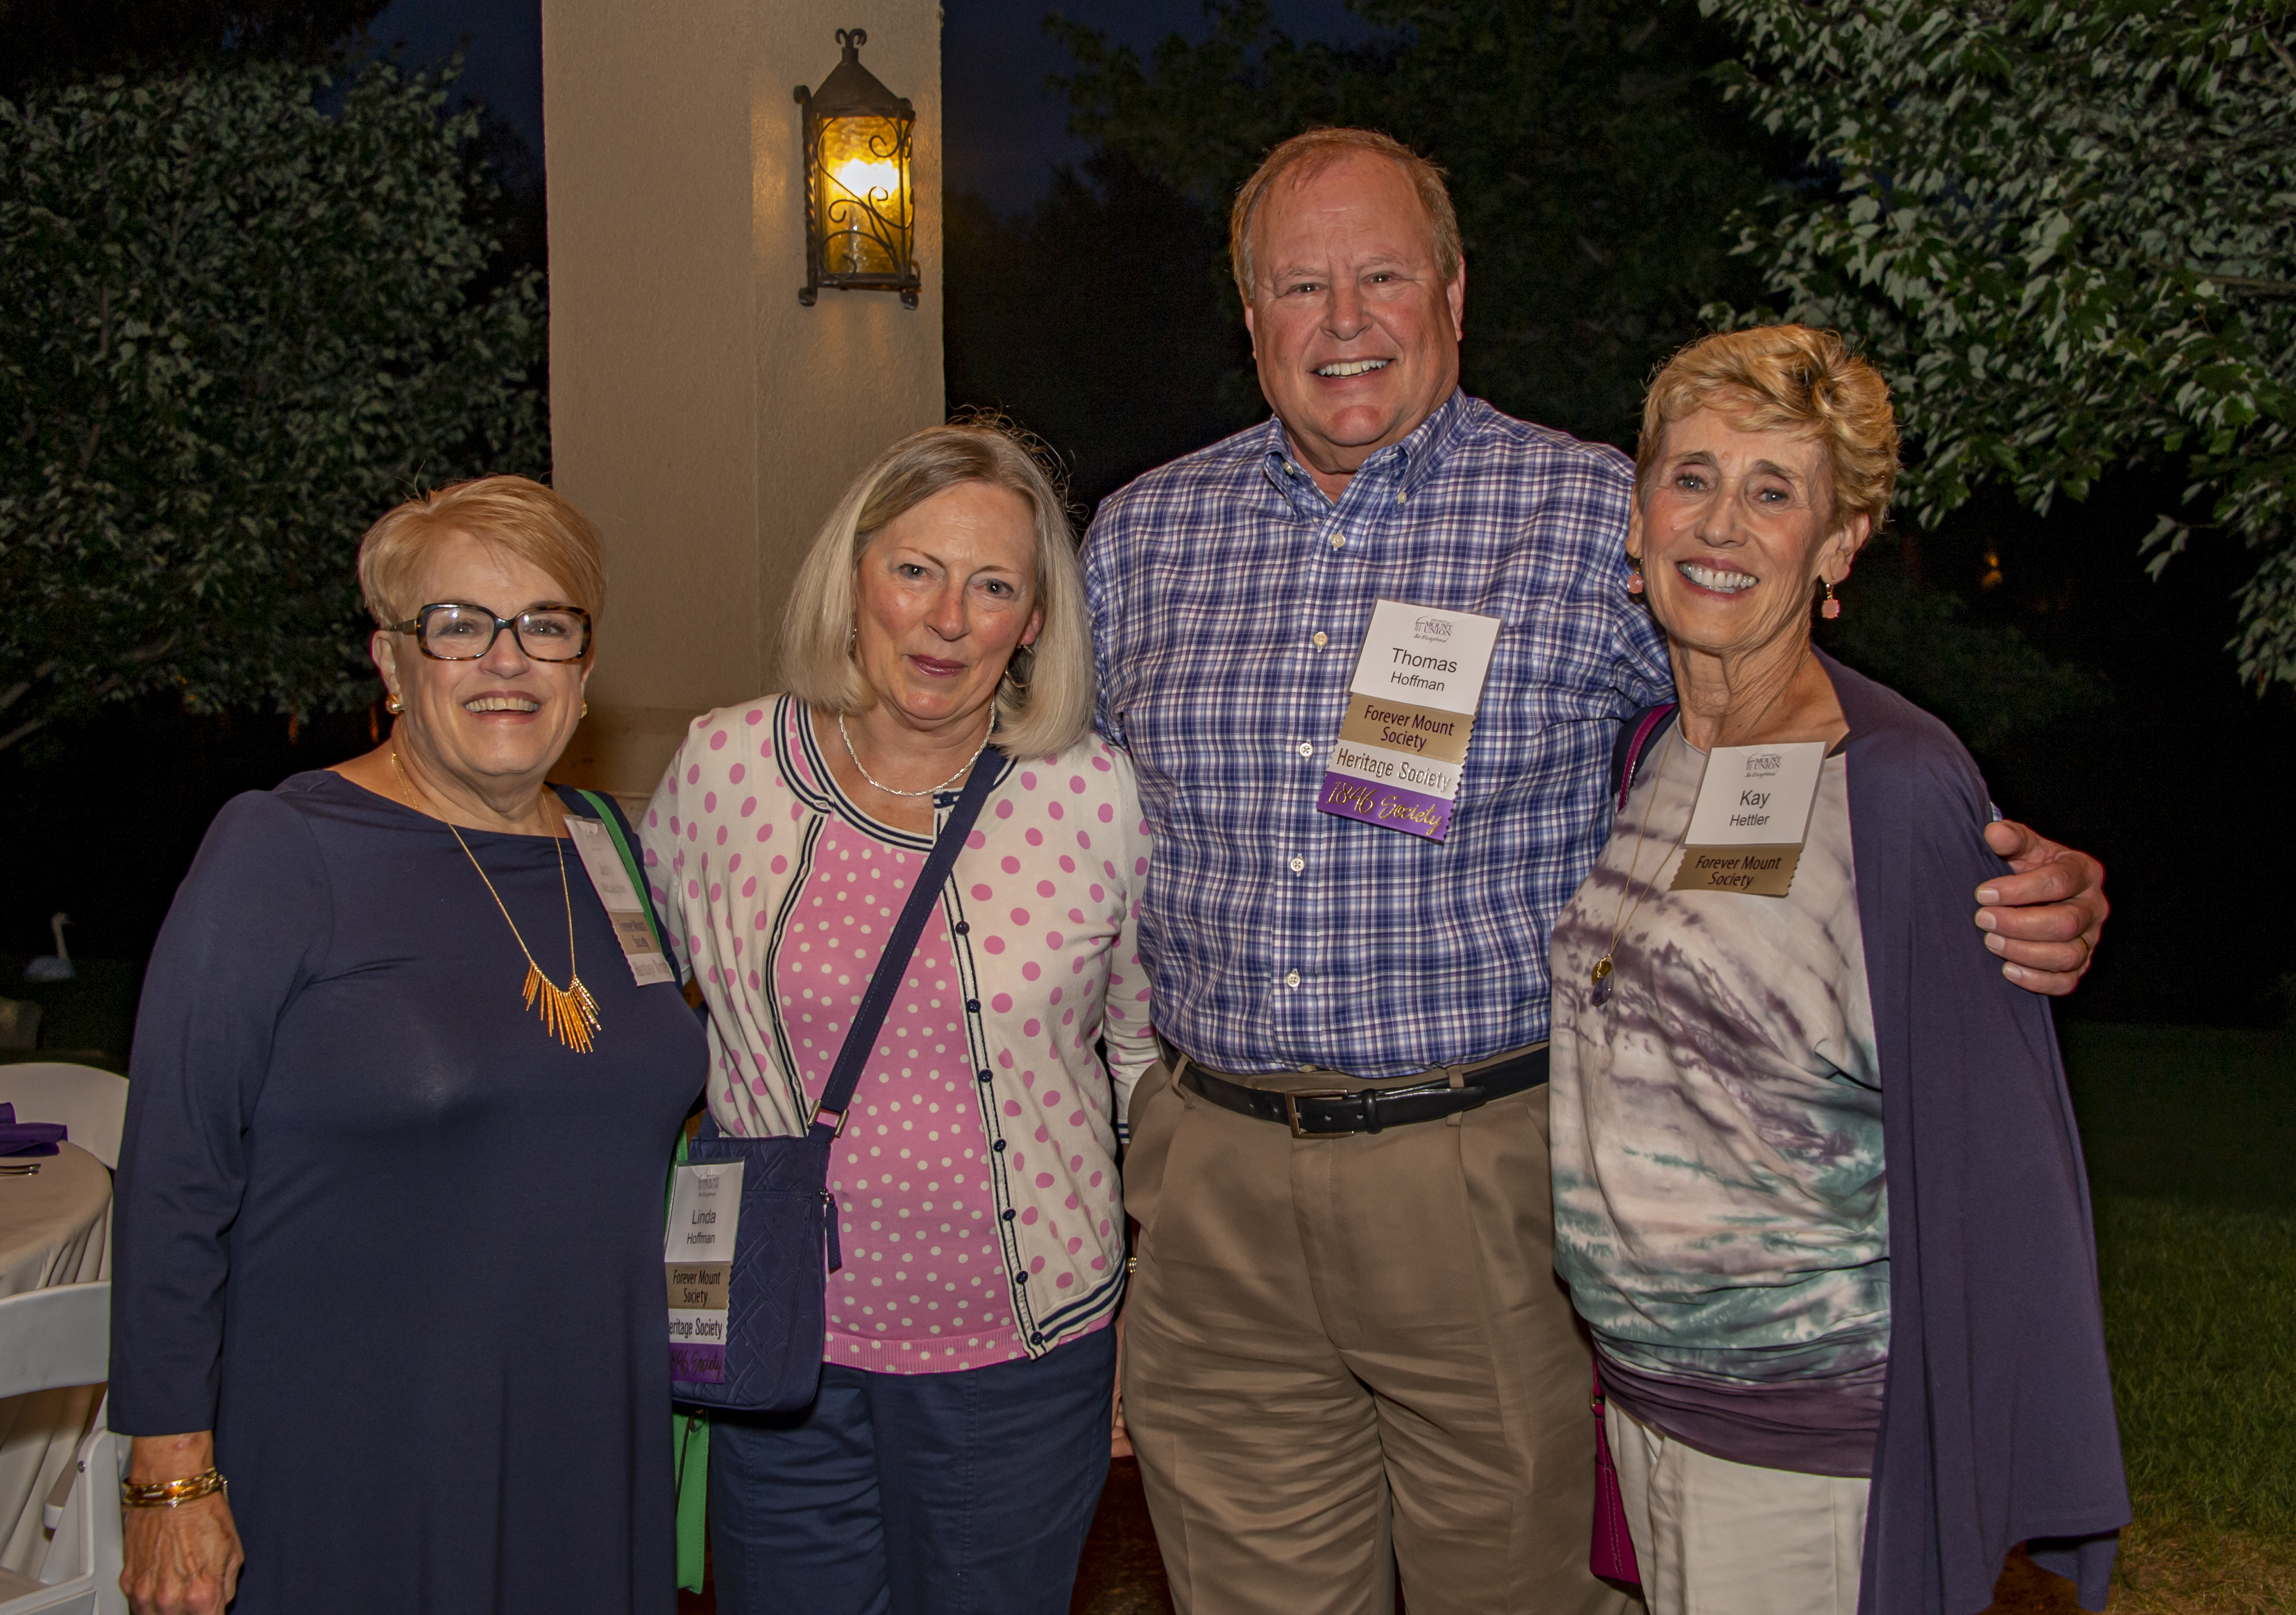 Forever Mount Society Members at An Evening Under the Stars